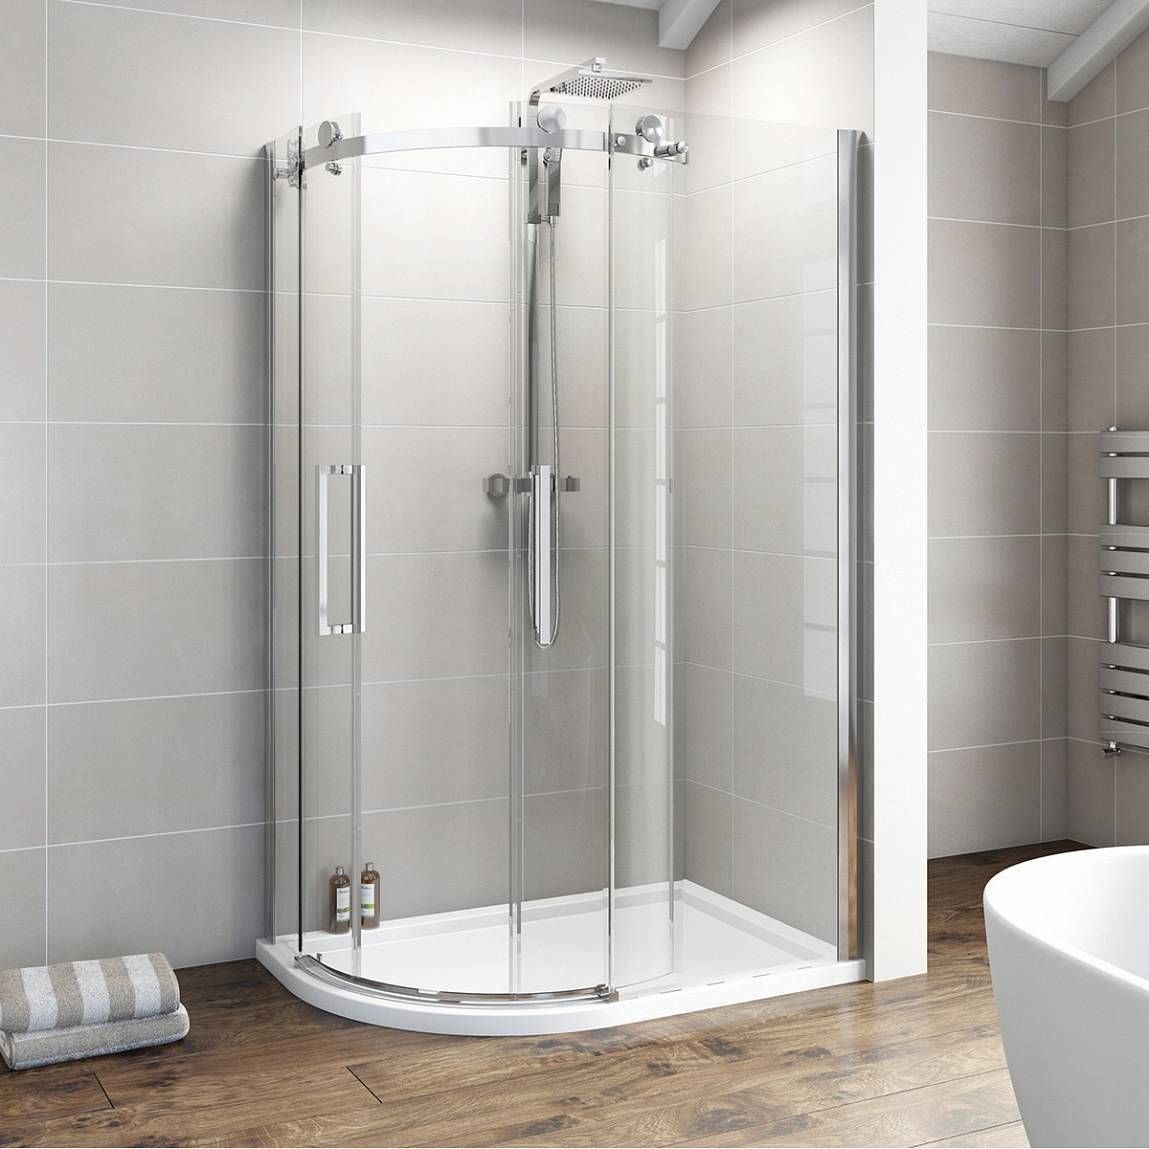 v8 frameless offset quadrant shower enclosure 1200 x 900. Black Bedroom Furniture Sets. Home Design Ideas